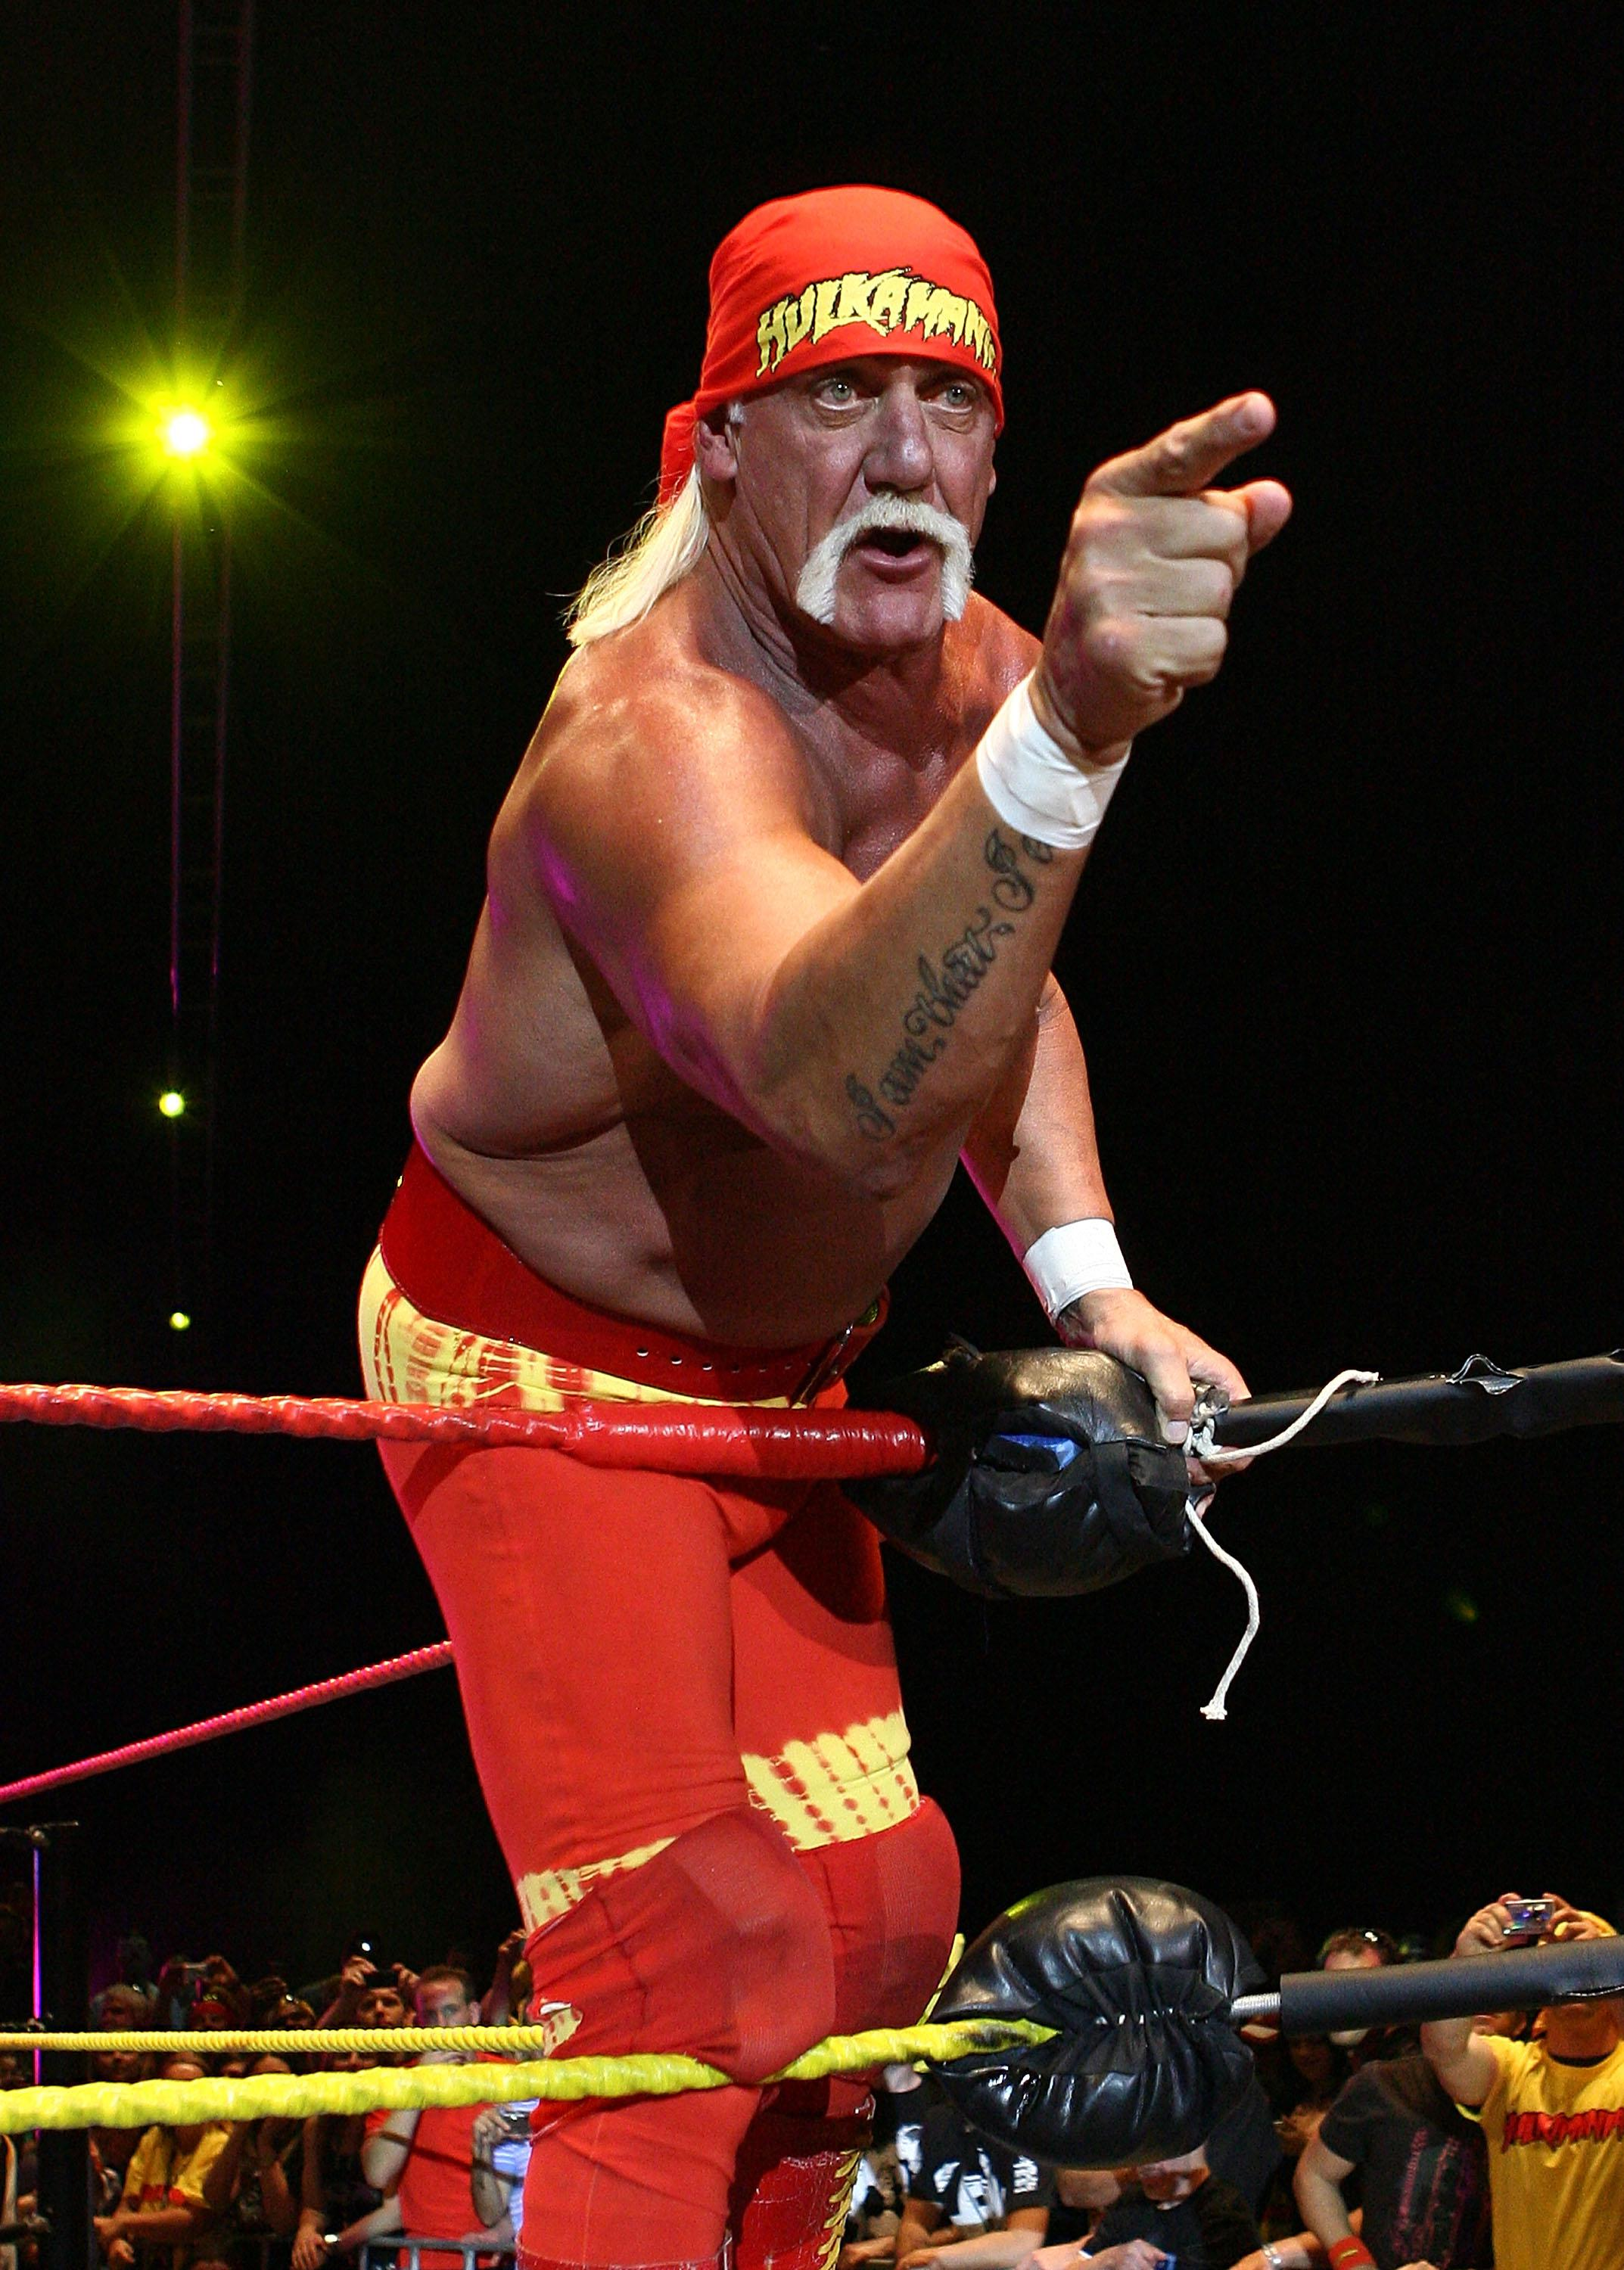 Hulk Hogan 2017 Wwe Latest News Legend Hulk Hogan Set For Shocking Wwe